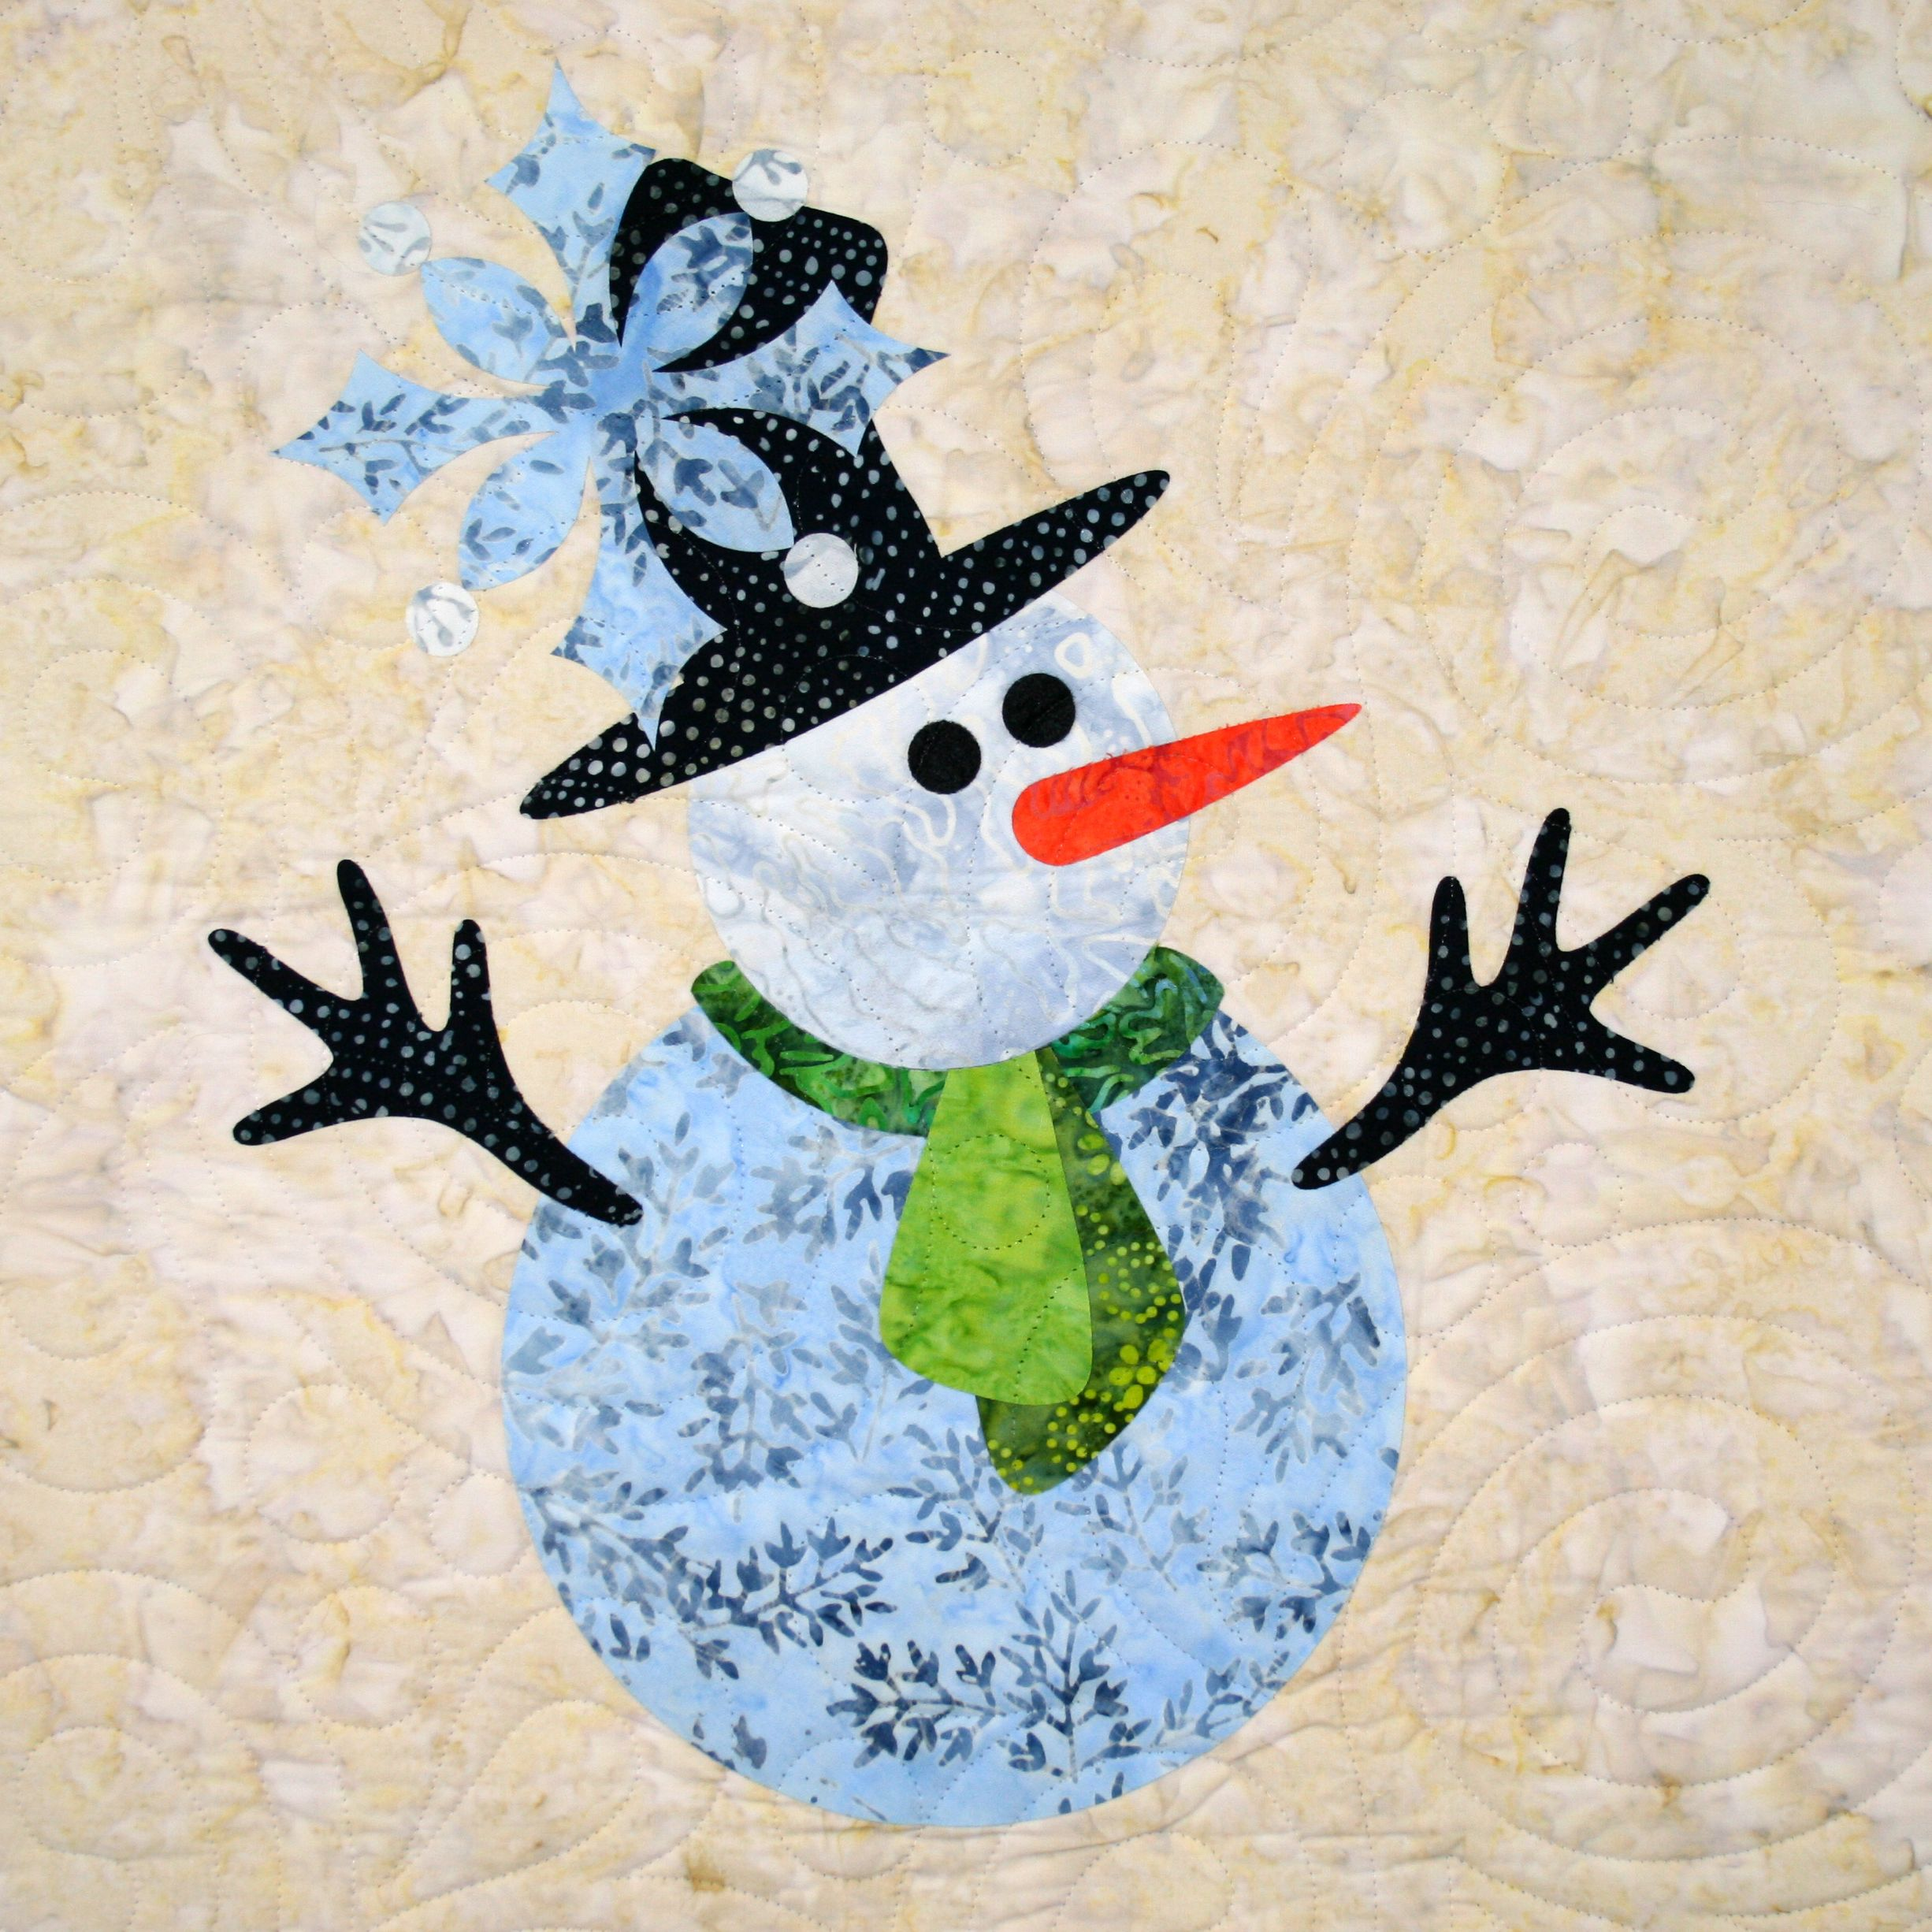 Let it Snow Snowman applique available at available at www.urbanelementz.com © Patricia E. Ritter